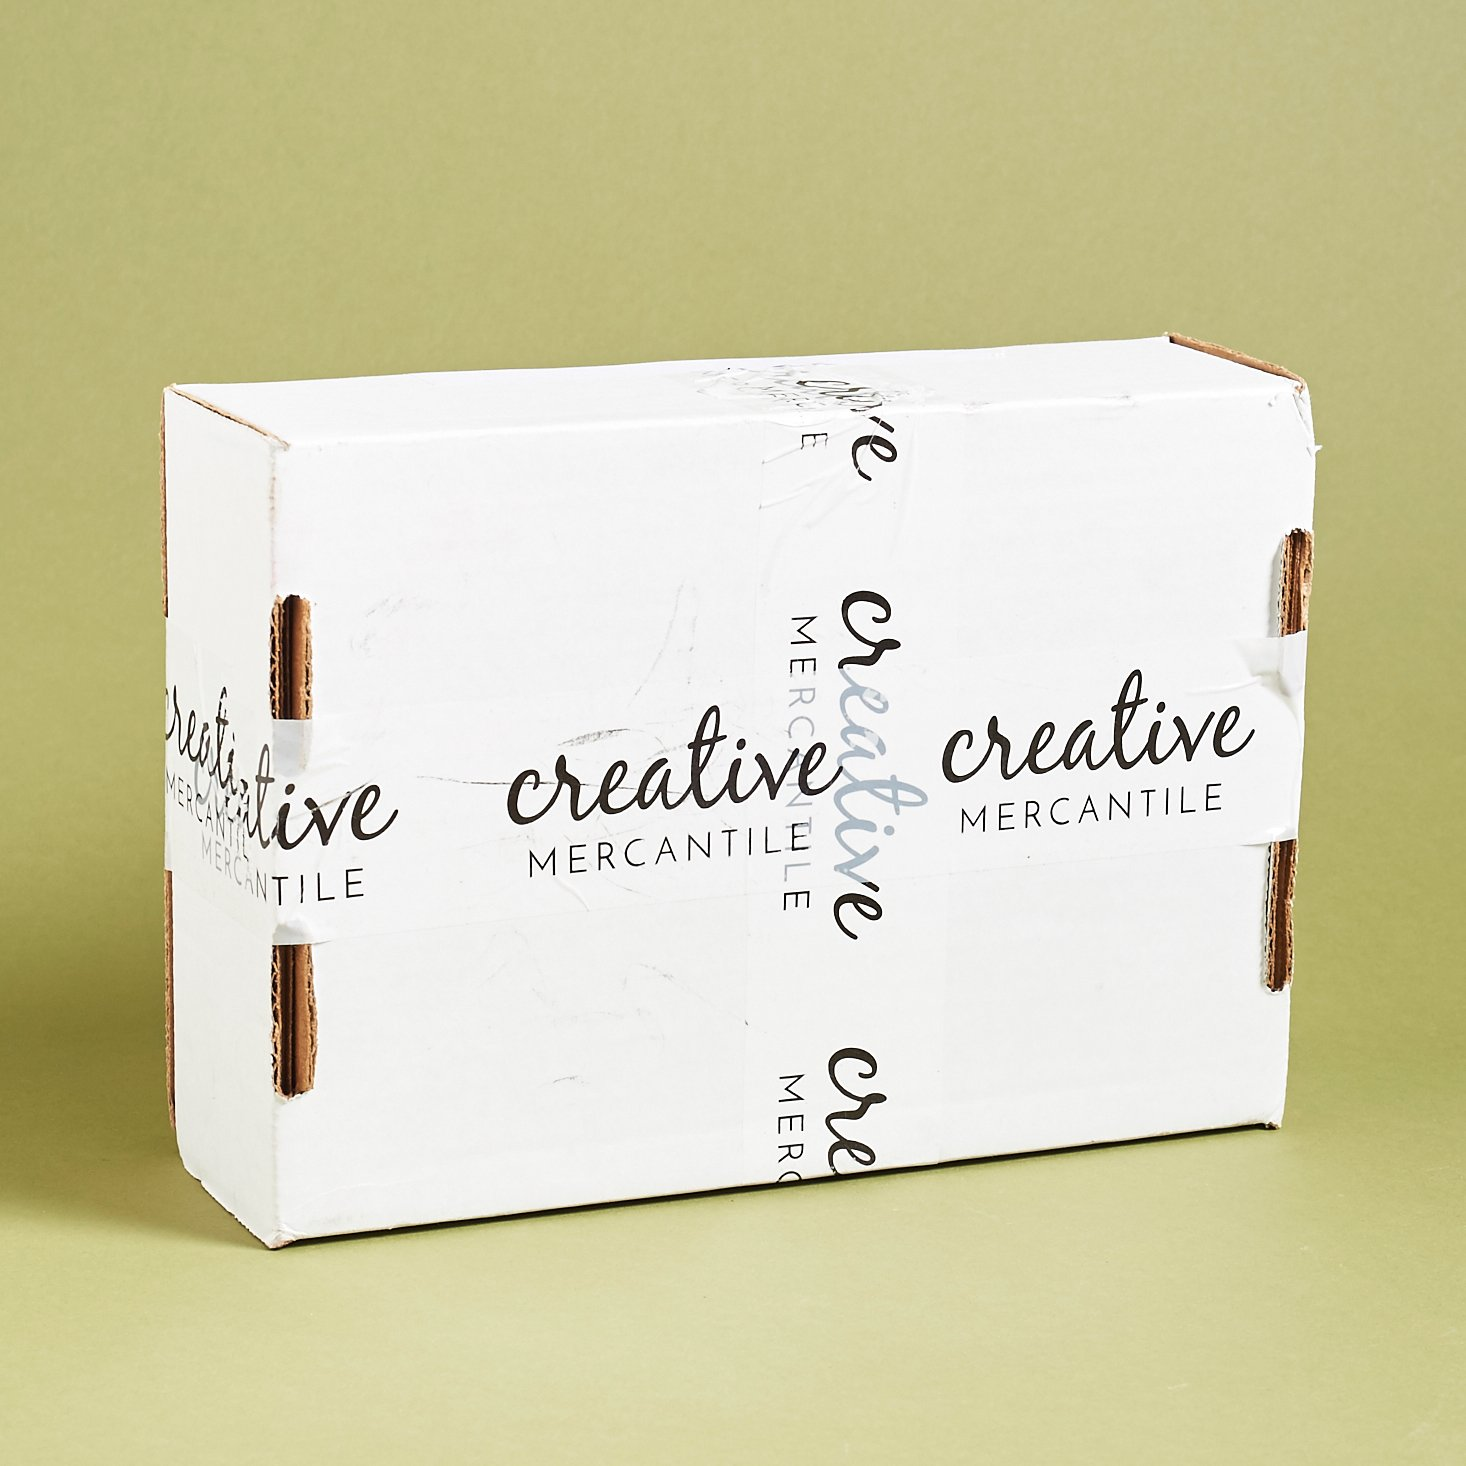 Read our review of the December 2016 Creative Mercantile Box!